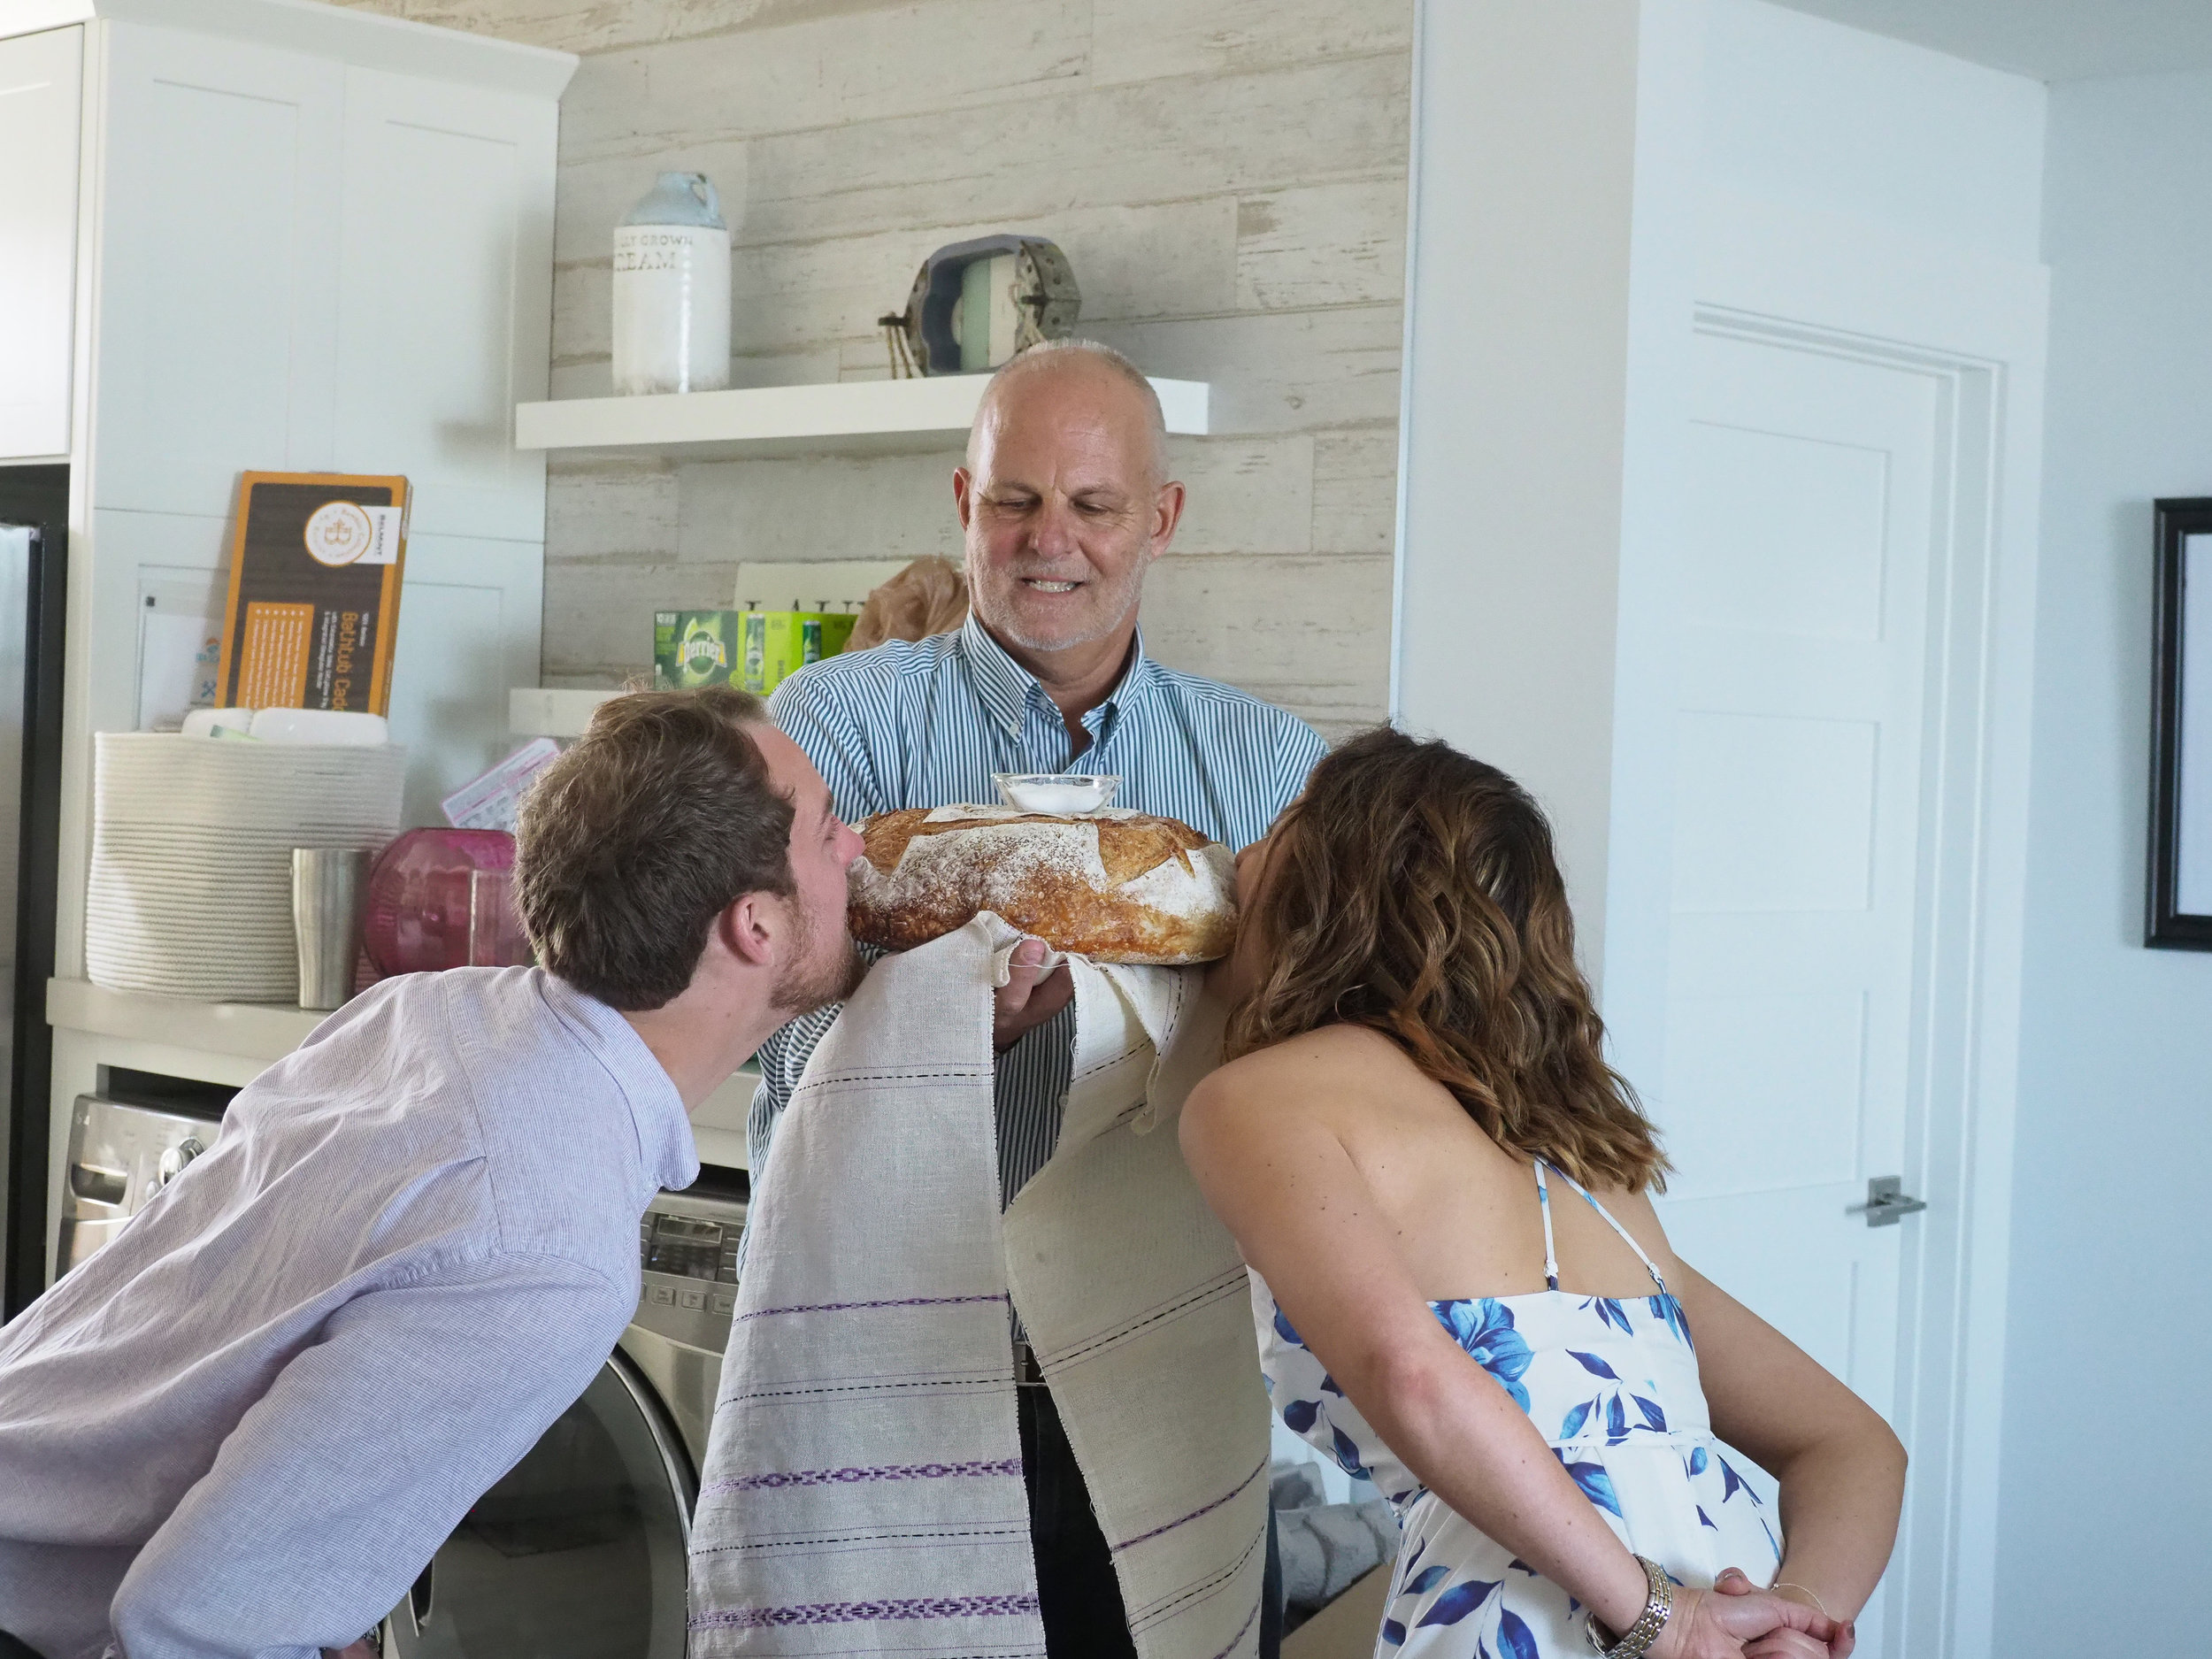 Bread - Couple partakes in Russian tradition of biting bread. Whoever takes the biggest bite will have the upper hand in the marriage the tradition goes. Who needs cake? Wrightsville Beach, NC.